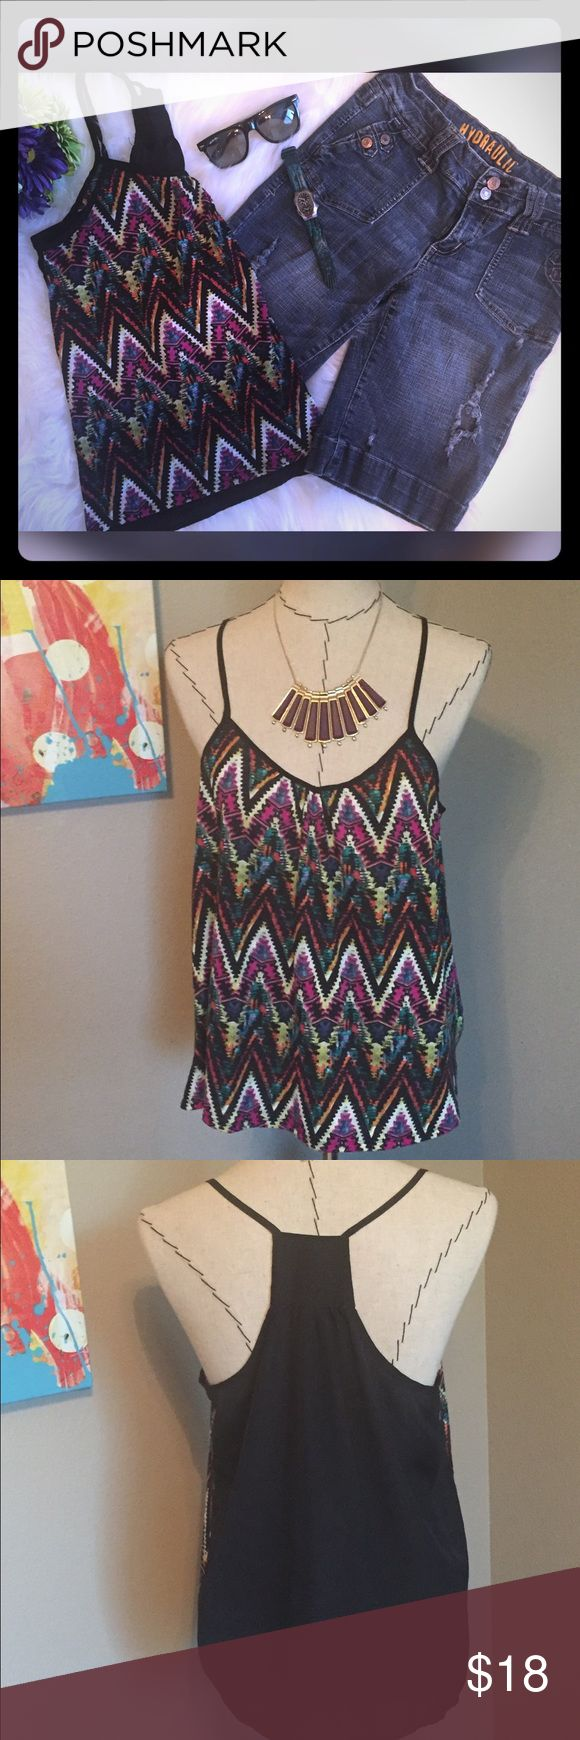 Hydraulic Denim Bermuda Shorts and Aztec Top Hydraulic Distressed Denim Bermuda Shorts and Aztec Print spaghetti strap top. Shorts Size 9/10 and top size Lg. Purchase together as set or ask for s separate listing to purchase separately. Hydraulic Shorts Bermudas